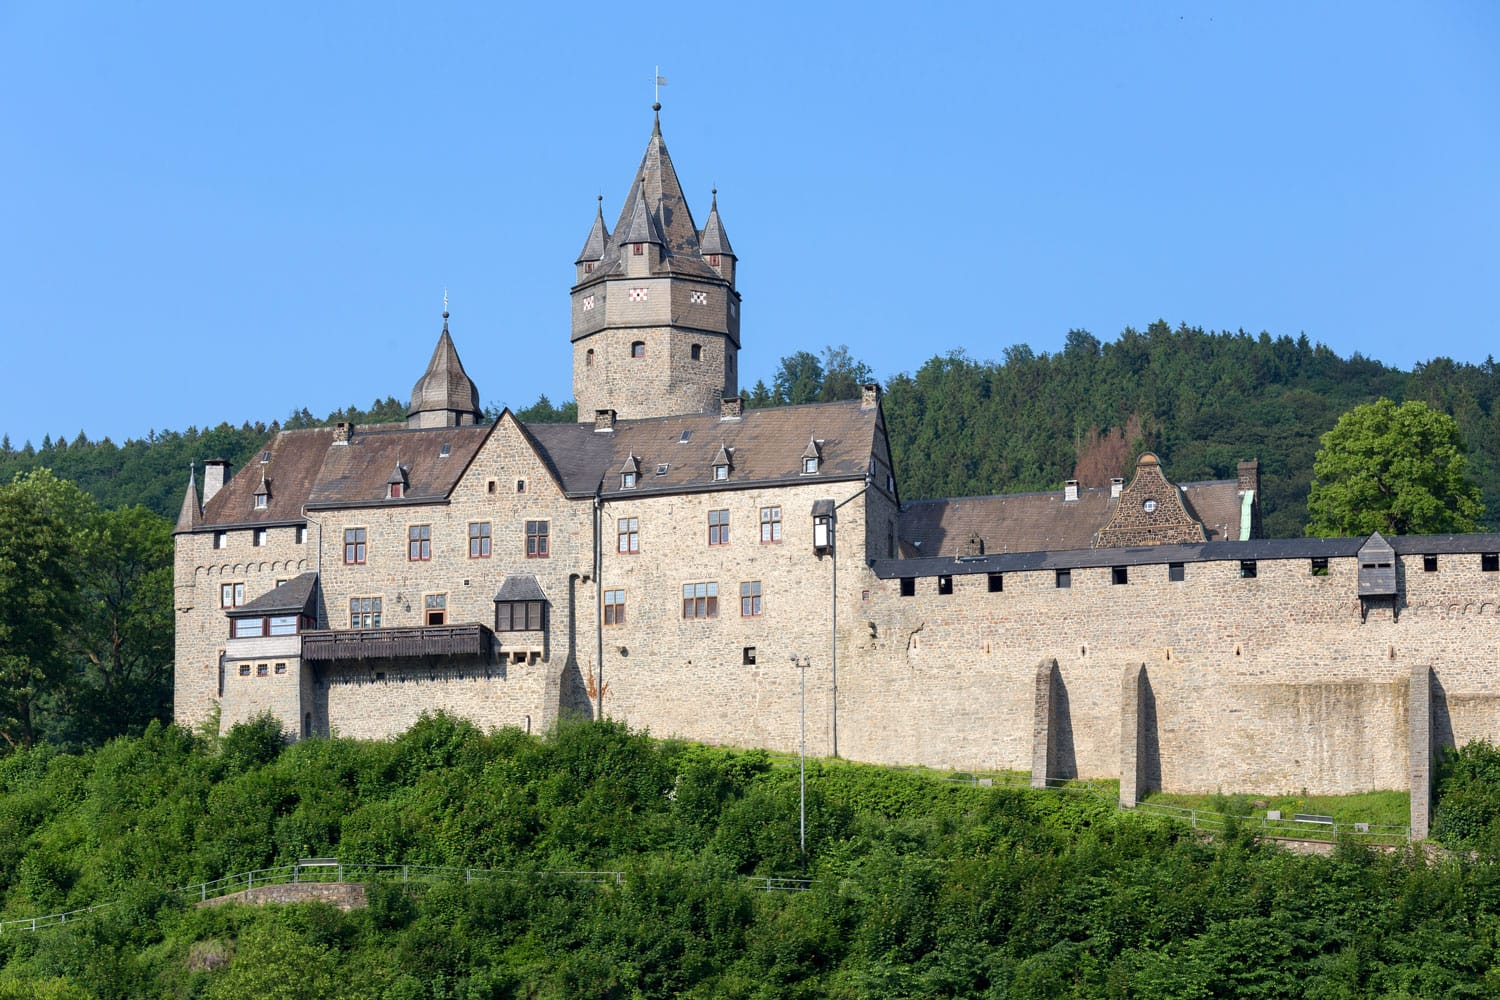 Castle Altena Sauerland Germany